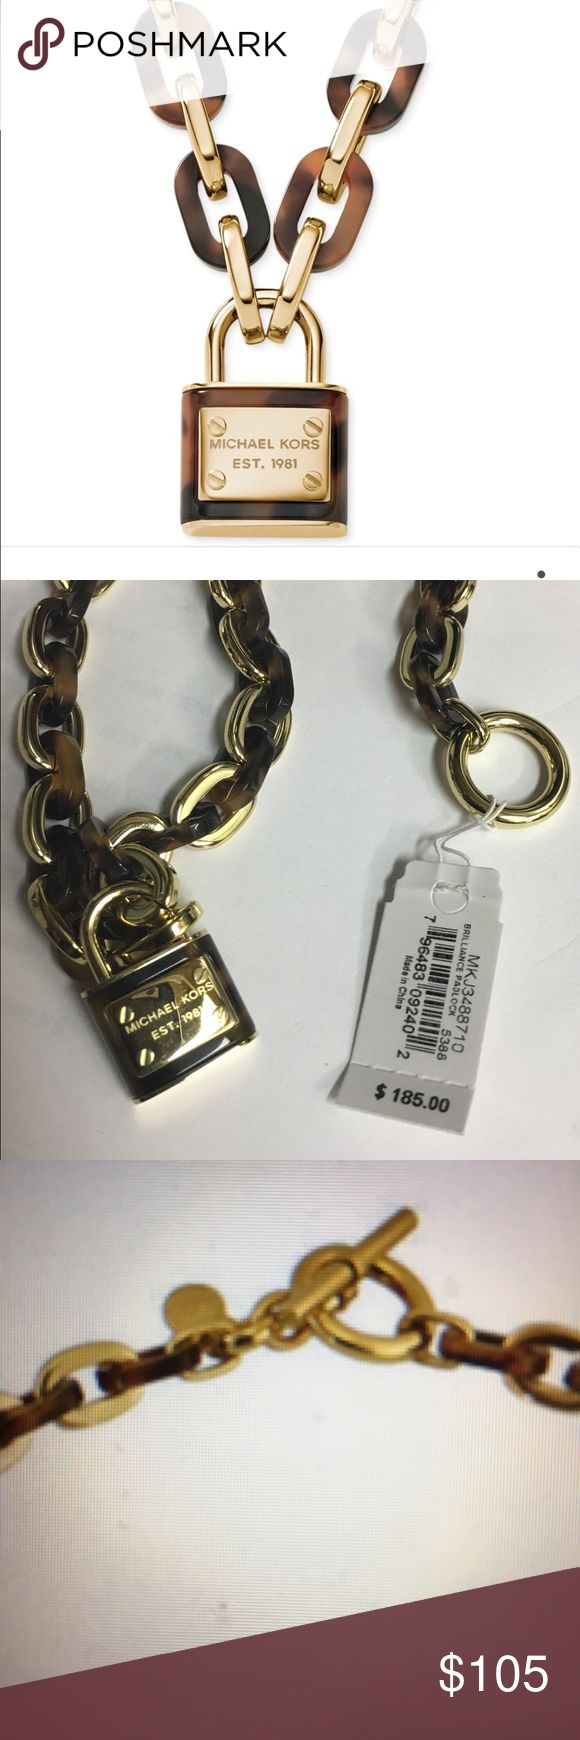 """Michael Kors Gold Tone Logo Padlock Necklace Michael Kors MKJ3325710 women's gold-tone logo Padlock pendant necklace is offered, in a yellow gold plated solid stainless steel. This model is made in dimensions of 18"""" long. This necklace has lustrous hardware and signature logo charms and lock. Michael Kors Jewelry Necklaces"""